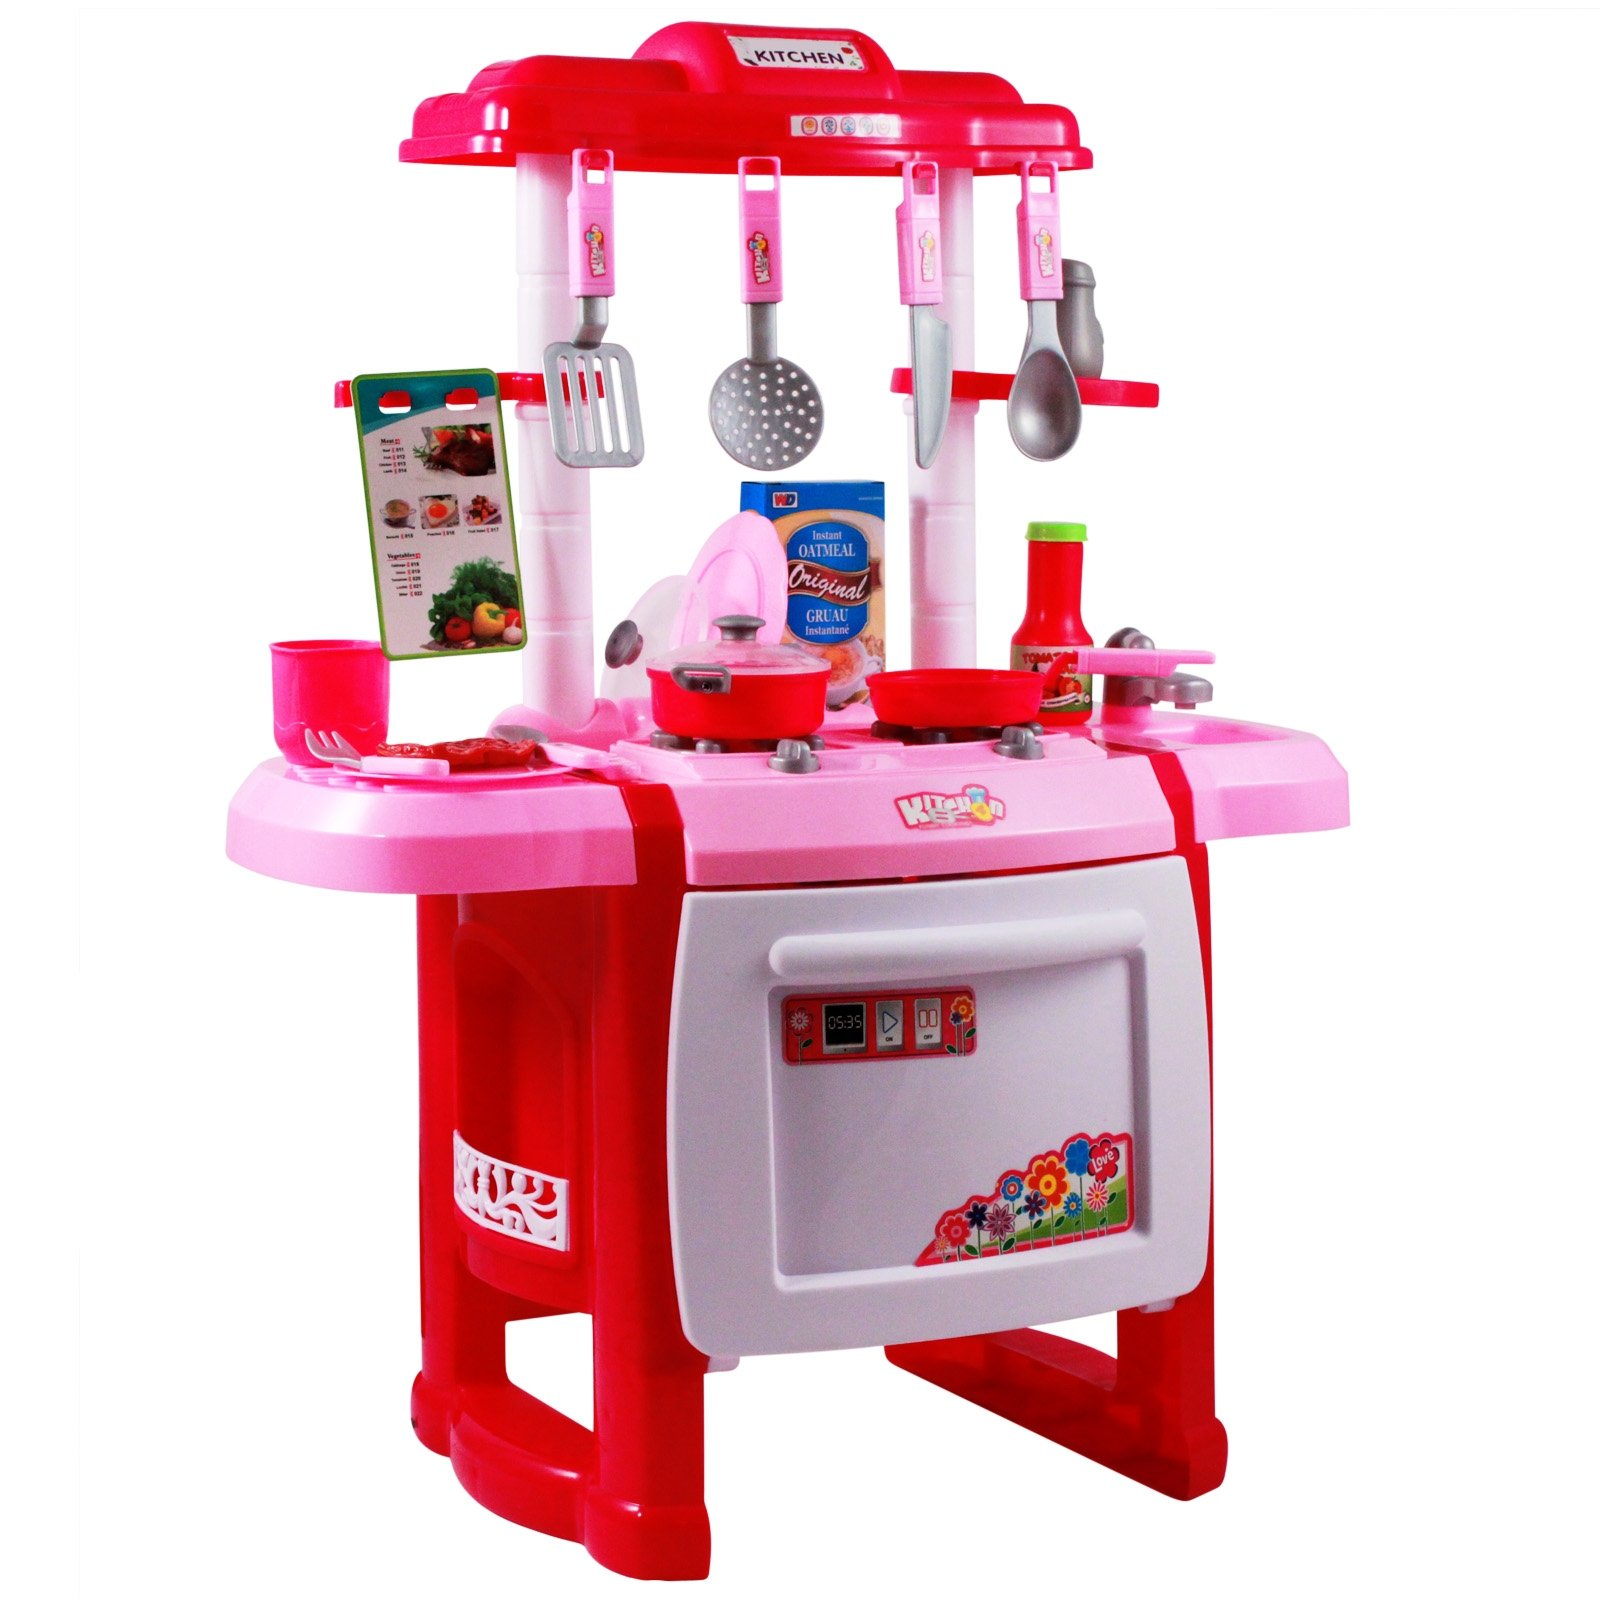 Kids jumbo light up pretend play pink kitchen oven set for Full set kitchen